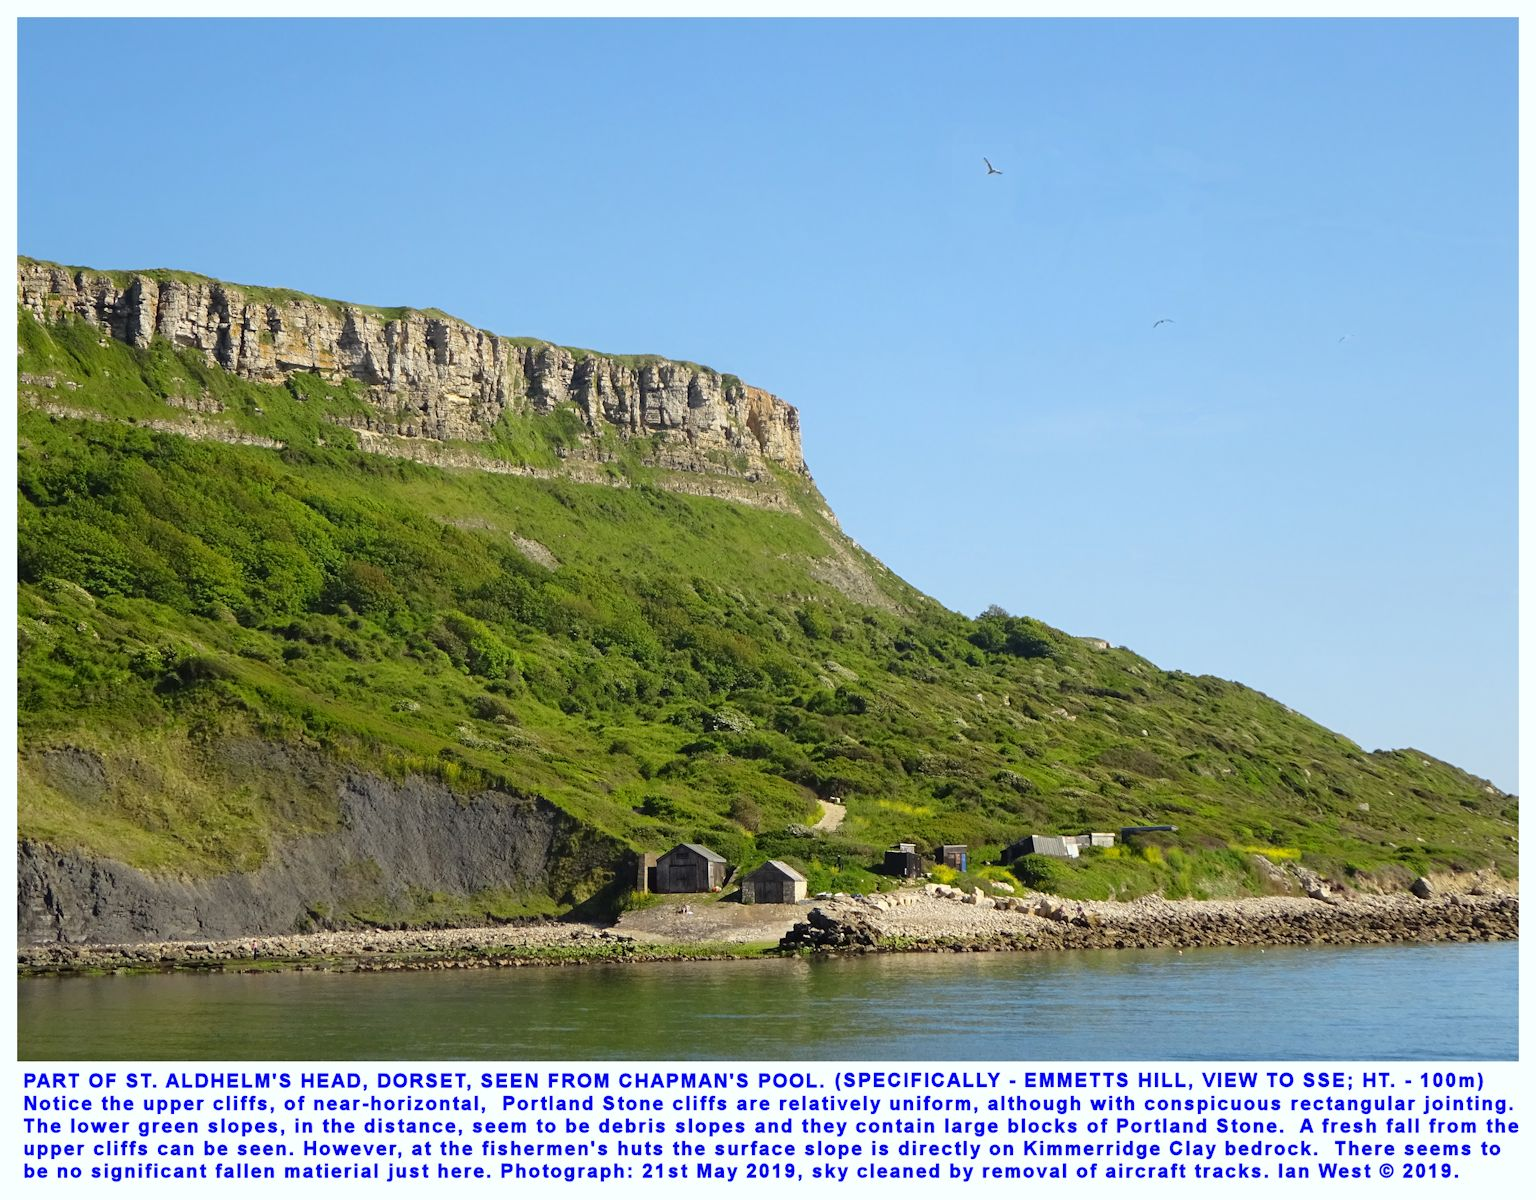 View towards Emmetts Hill, part of the St. Aldhelm's Head promontory, Dorset, Jurassic Coast, seen from Chapman's Pool, 21st May 2019